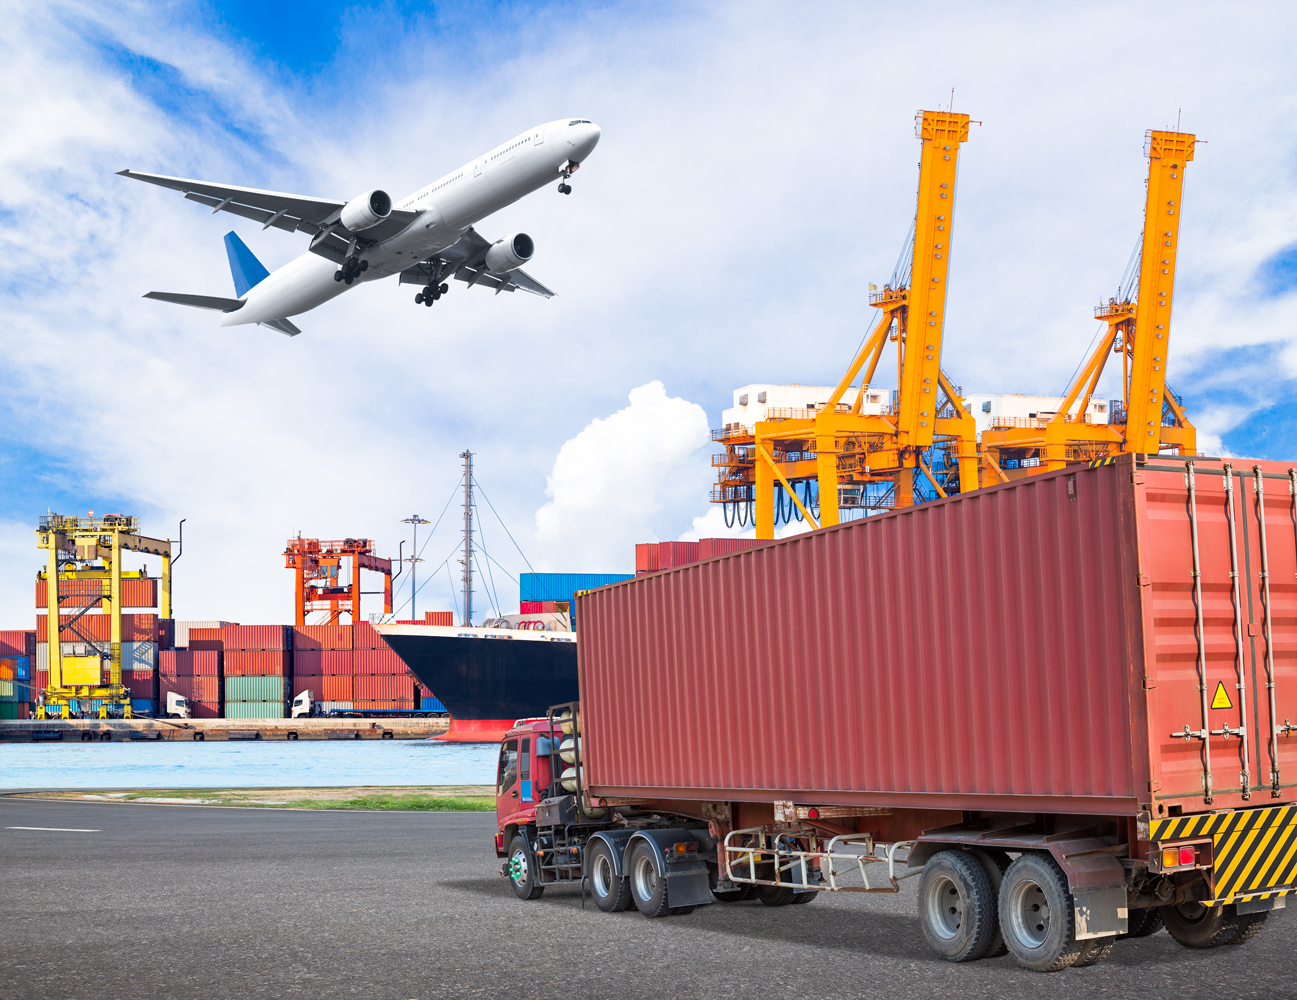 Truck-transport-container-and-cago-plane-flying-above-ship-port-646931962_5472x4219.png